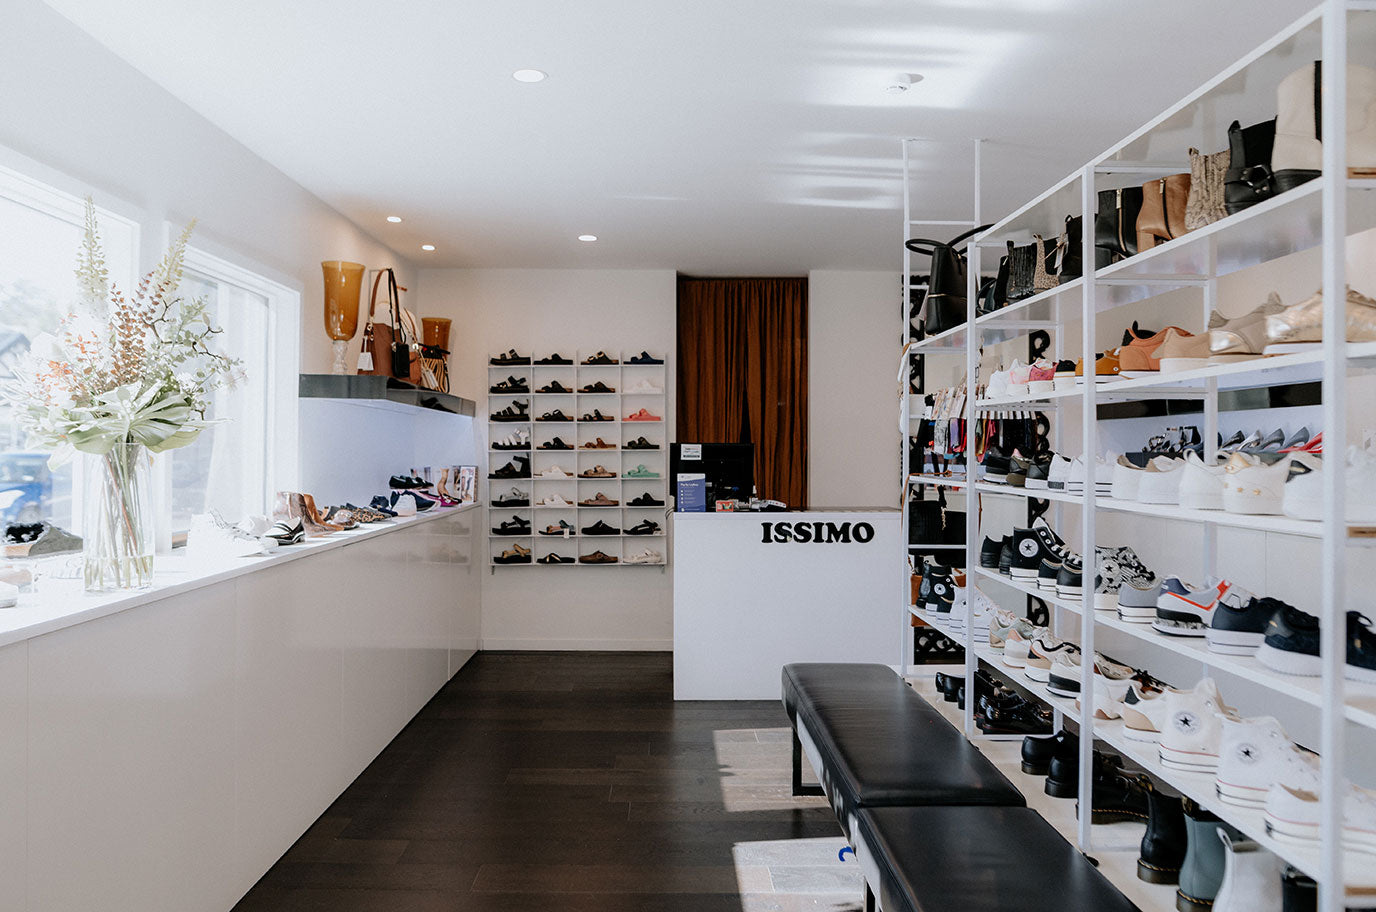 issimo christchurch inside shoe store with saben handbags in christchurch